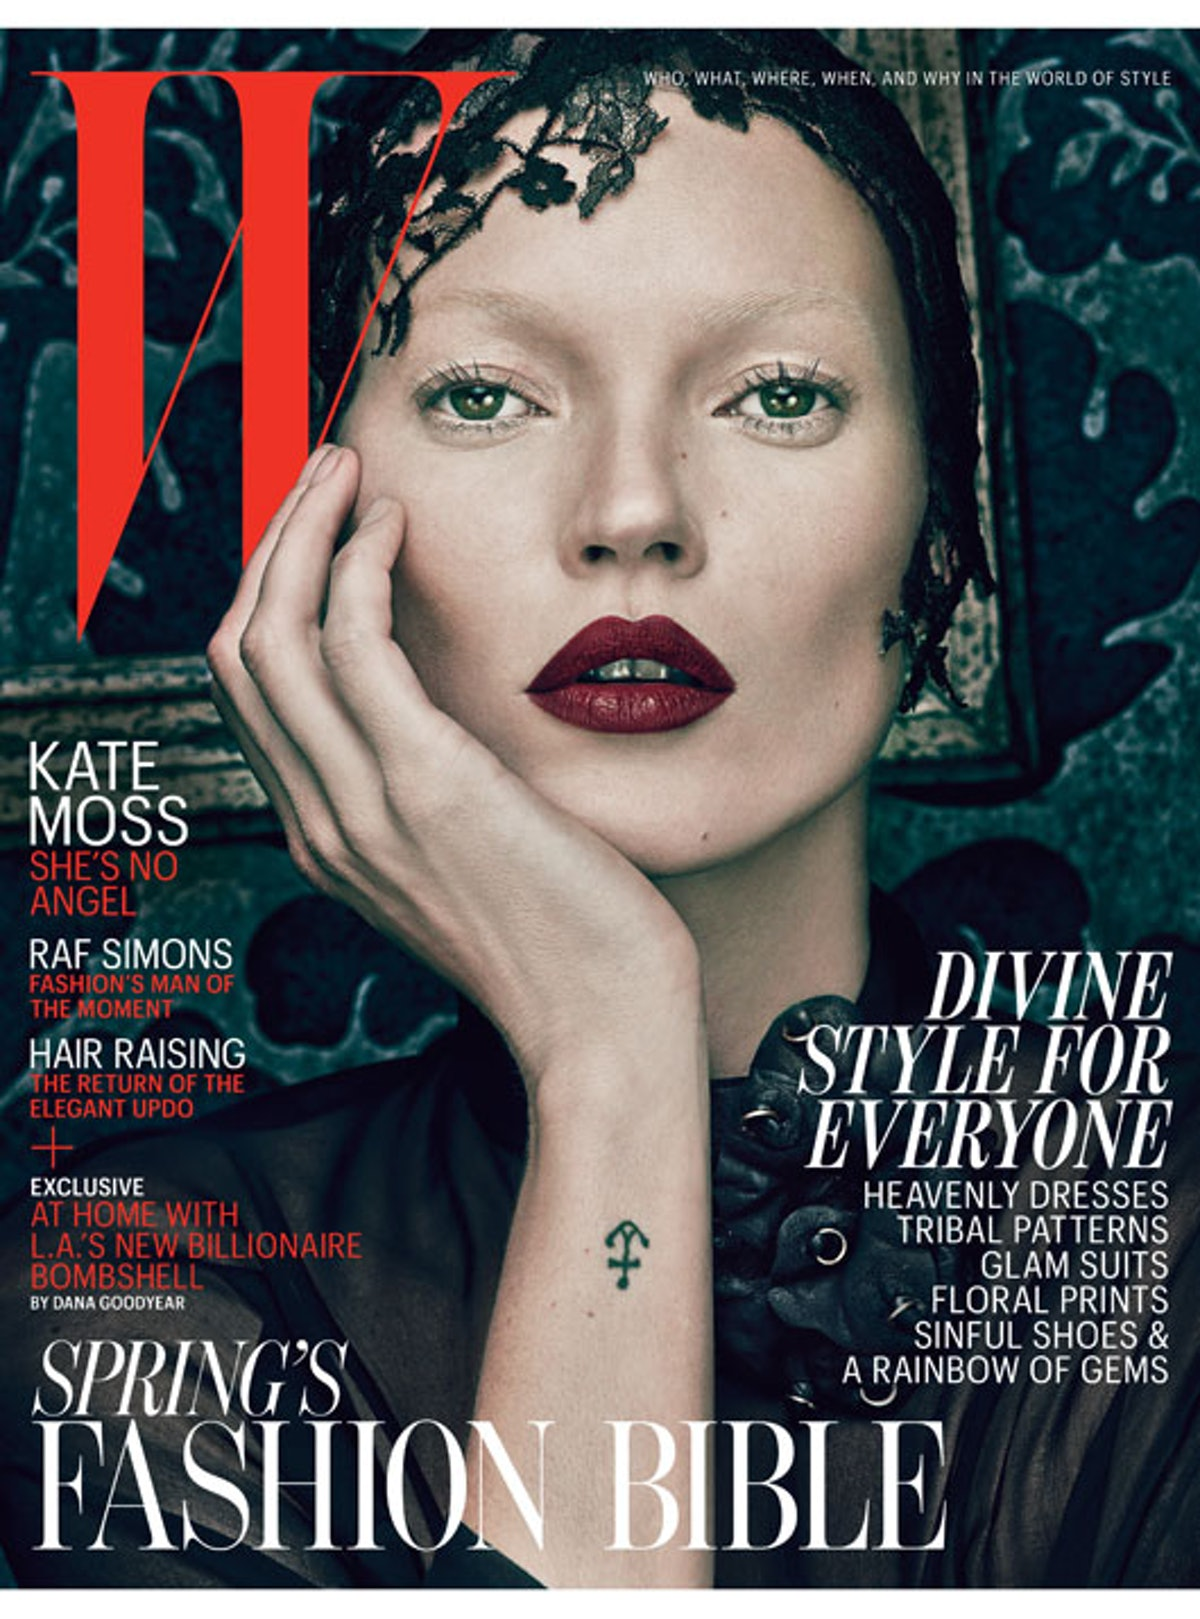 fass-kate-moss-cover-story-march-2012-14-l.jpg